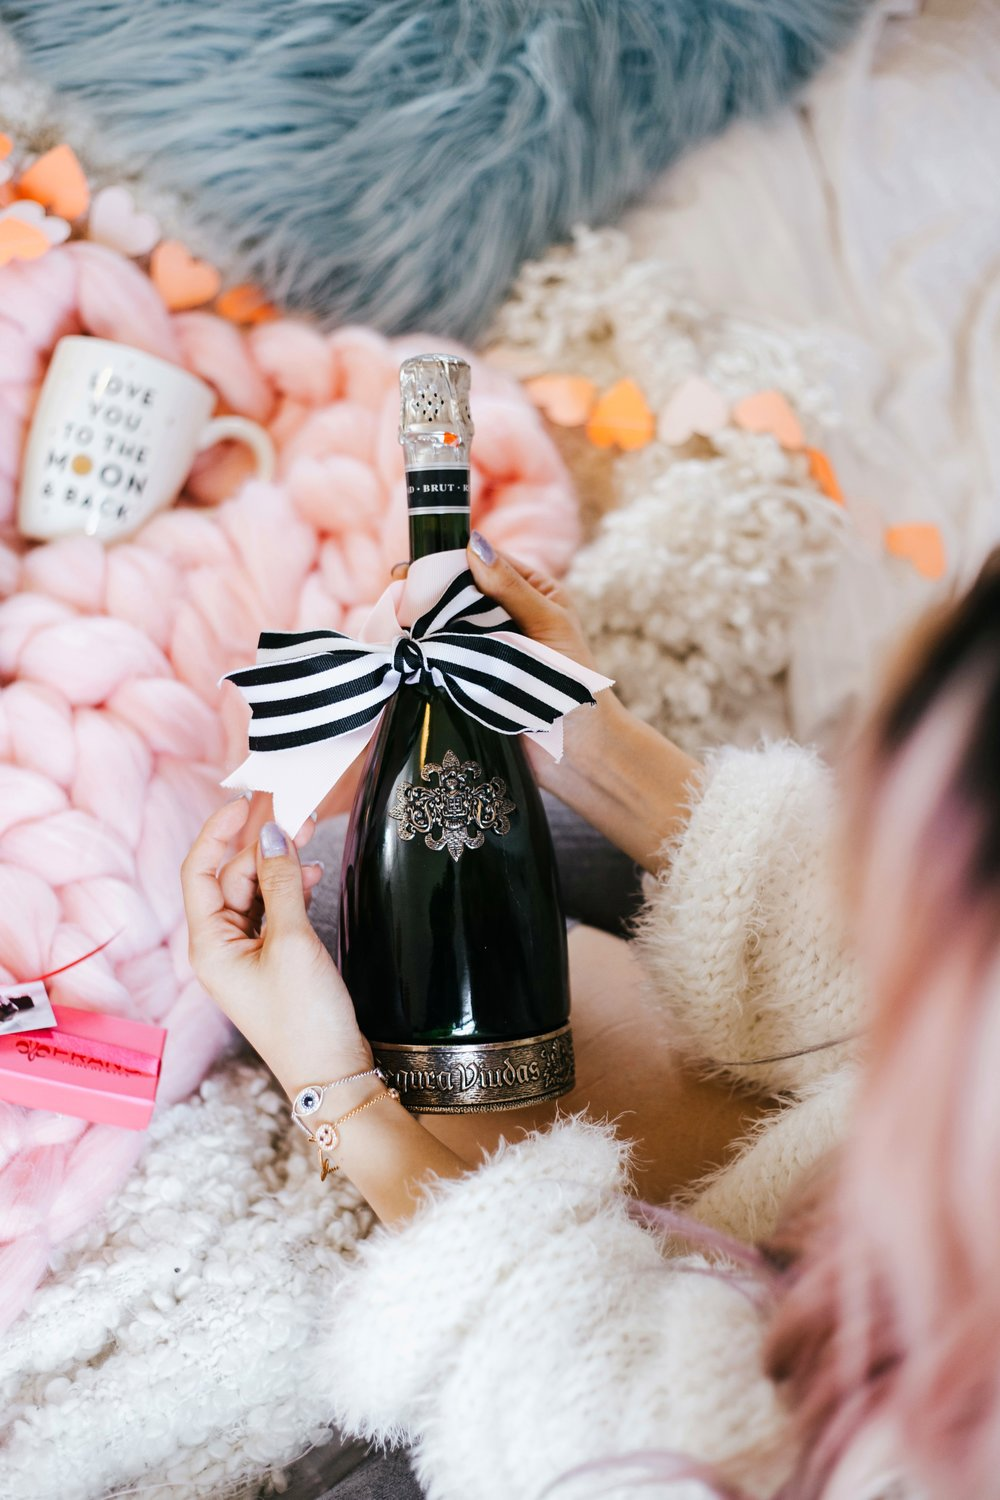 Segura Viudas Heredad Brut Reserva-I love you to the moon & back-heart chocolate-heart mini garland-Aika Yokoyama-AIkas Love Closet-special gift-galantine's day-valentine's day-sparkling wine-small room-chunky blanket-pink hair-fur pillow-chunky throw-japanese-lifestyle and style blogger-inspiration-seattle 2